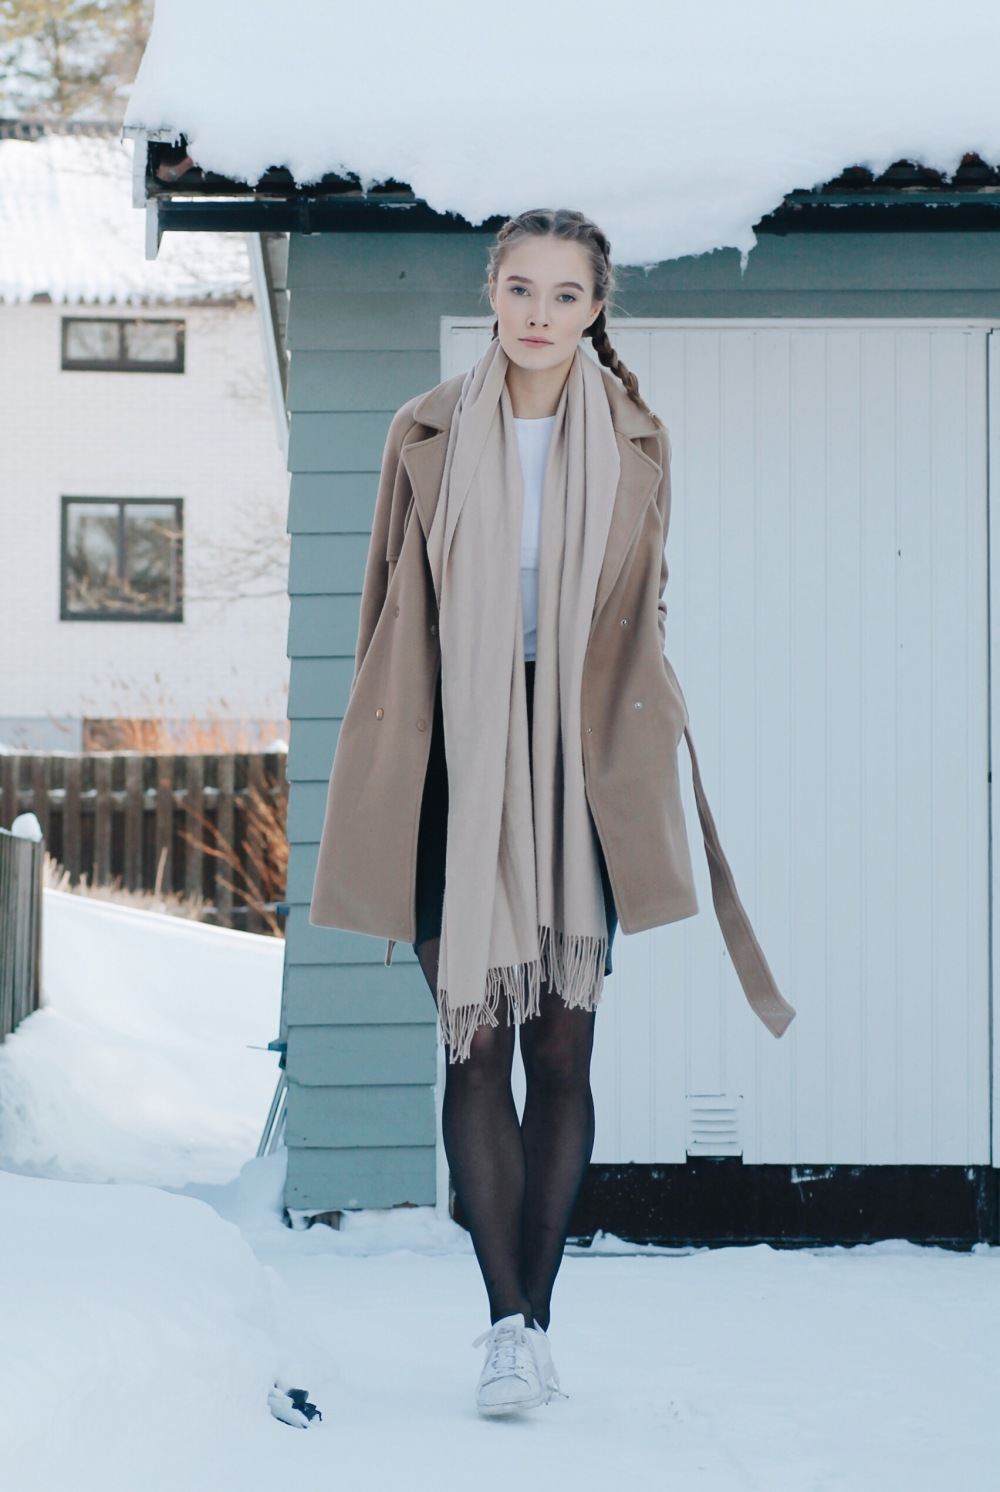 Petra Karlsson is a picture in beige, pairing a gorgeous beige overcoat with a matching scarf and a white tee for a fresh winter feel. Wear this look with a mini skirt and casual sneakers to steal Petra's style. Coat/Skirt: Shein, Top: Bikbok.